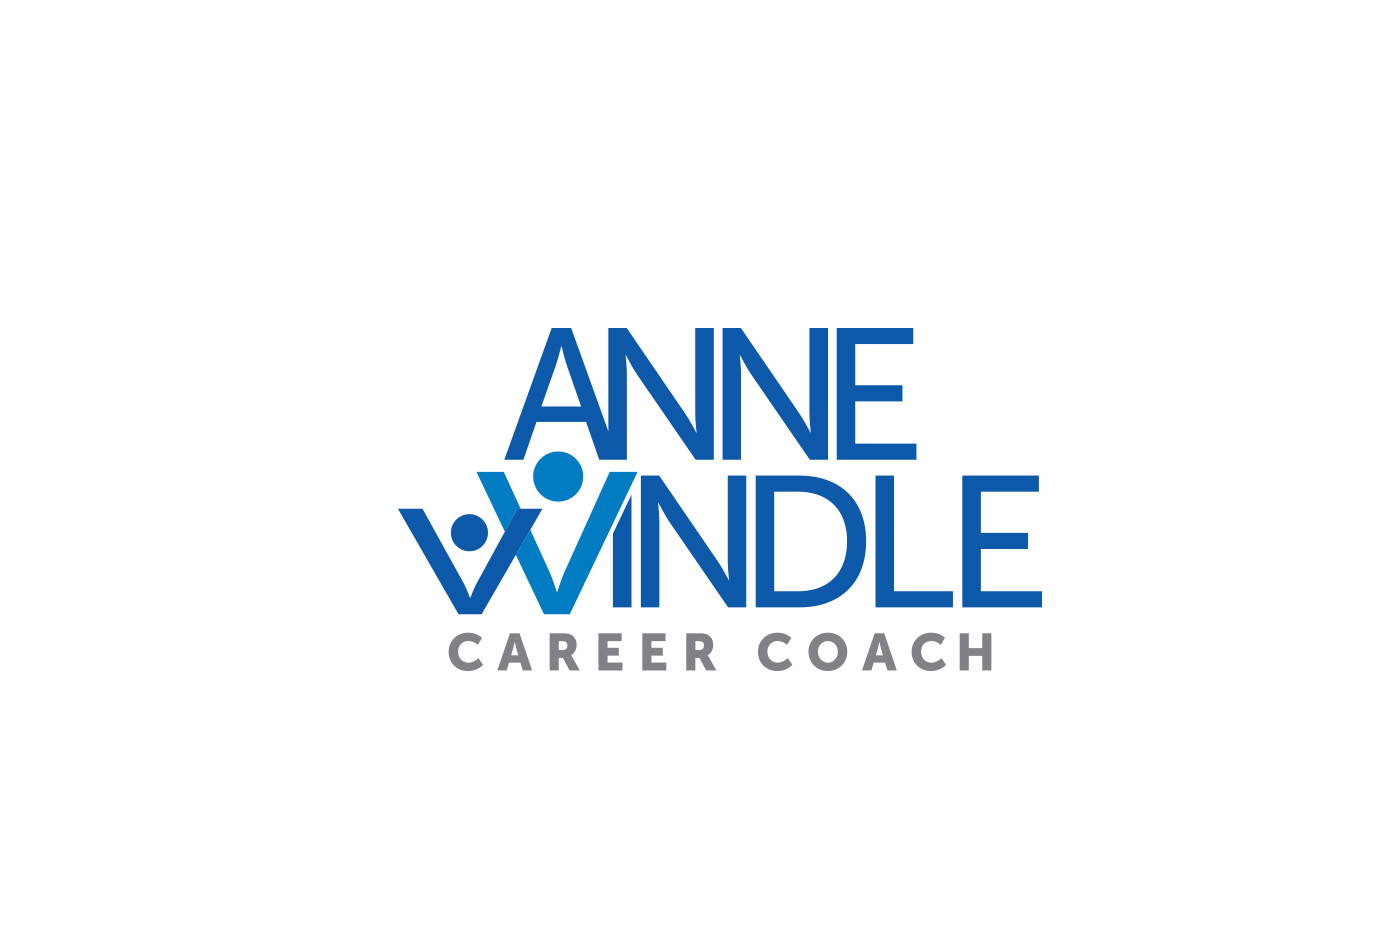 Anne-Windle-Career-Coach-logo-design-4.jpg